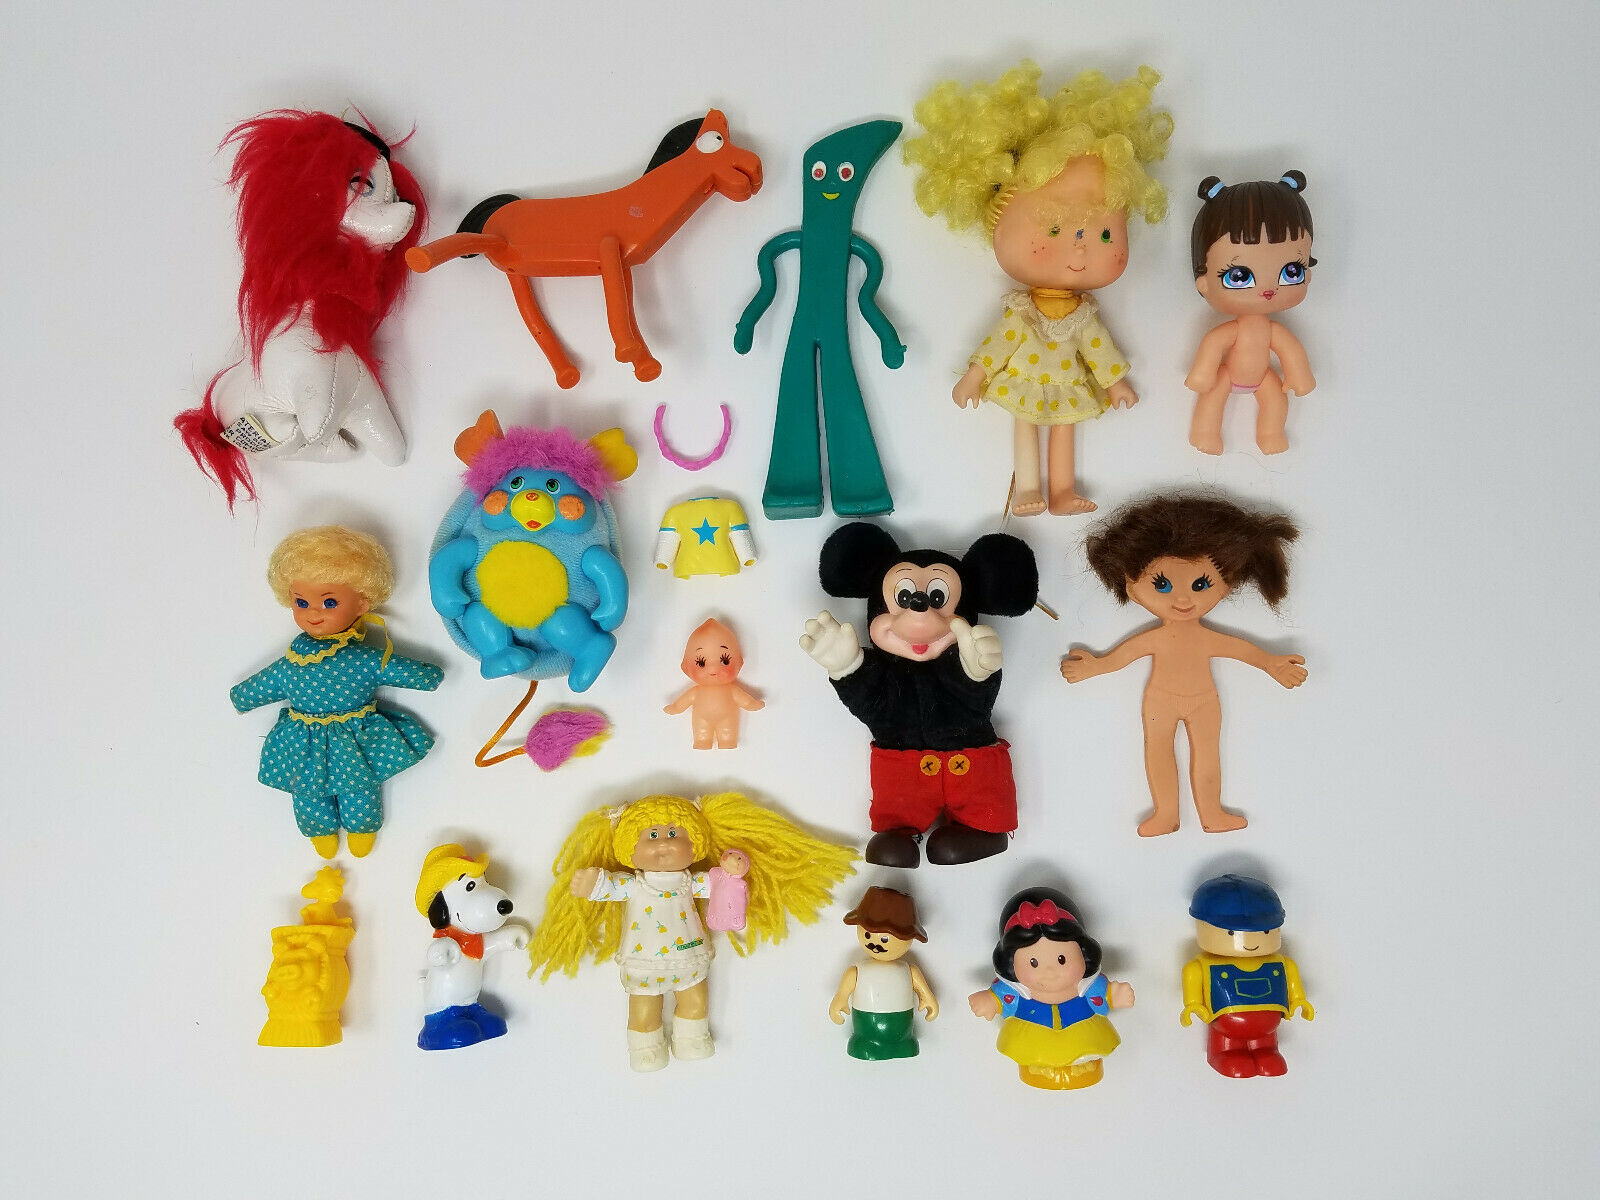 Mixed LOT of Vintage Dolls & Figures Strawberry Shortcake Cabbage Patch Gumby